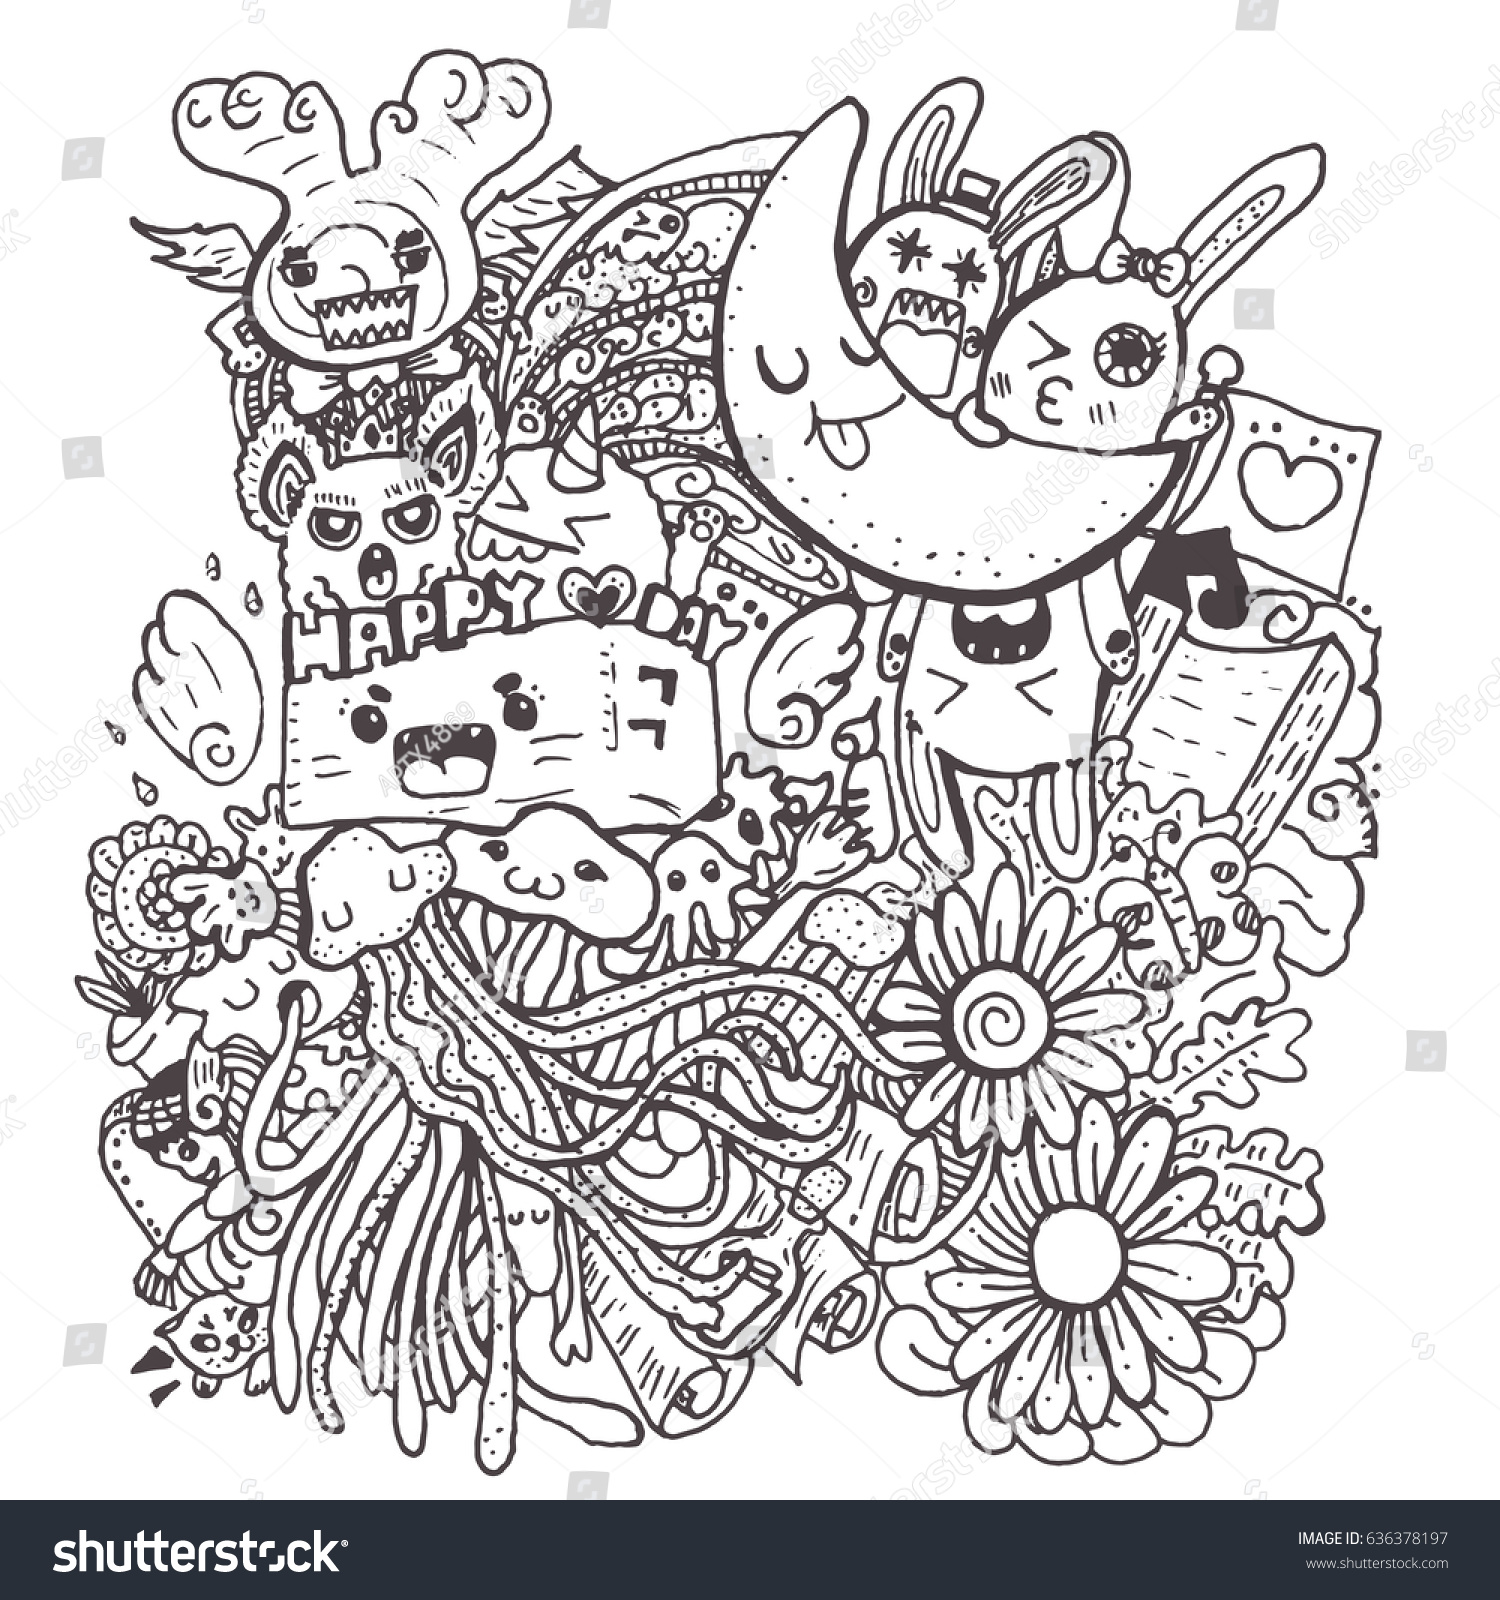 Crazy Doodle The Monster Hand Drawn Vector Illustration For Kid T Shirt Print